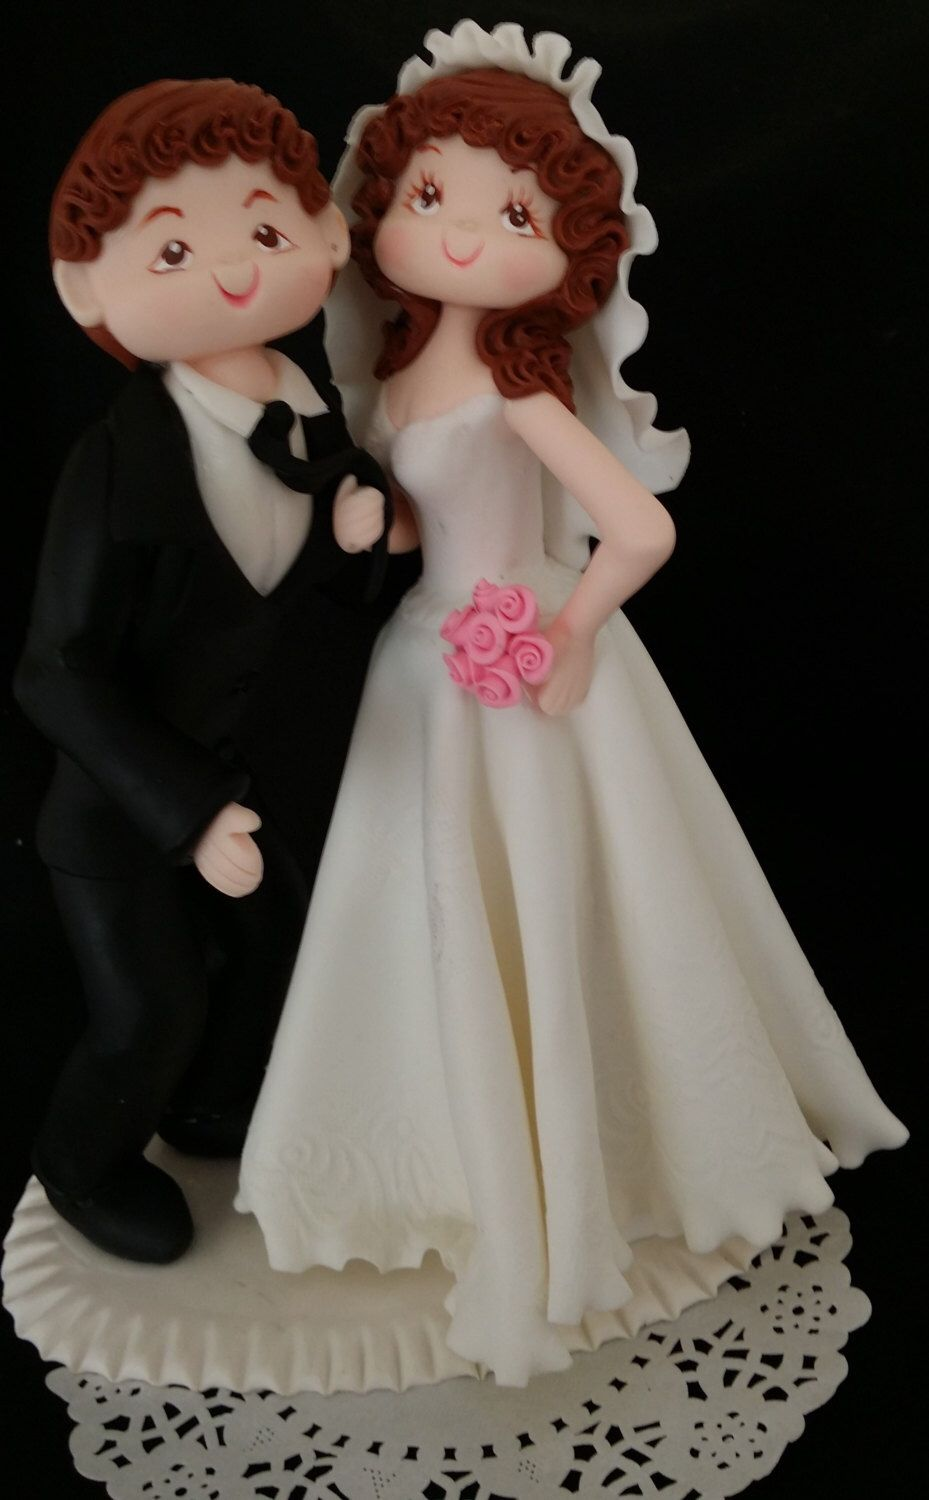 Wedding Cake Funny Wedding Cake Topper Bride And Groom Figurine Funny Cake Toppers Wedding